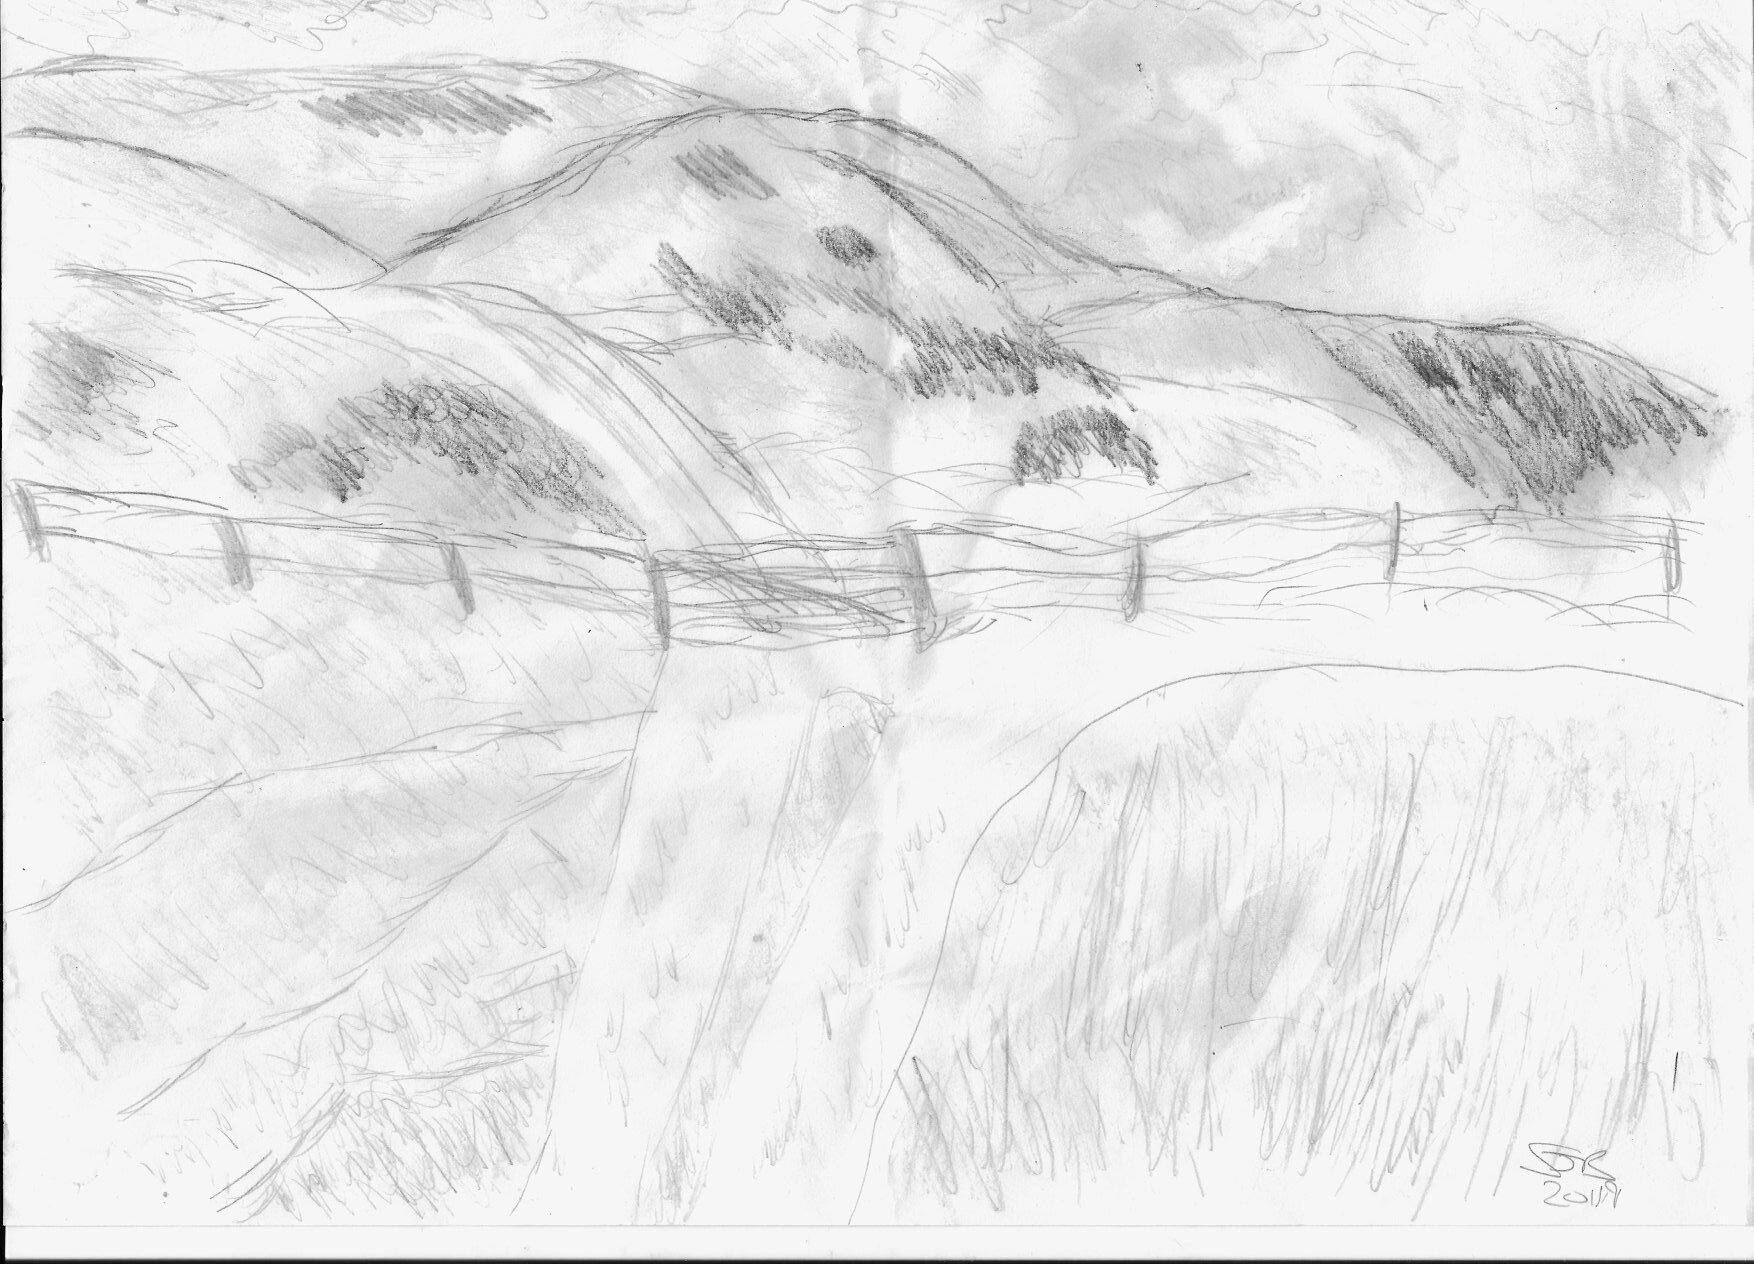 My first attempt at sketching for several years. It's inspired by a view near Jevington on the South Downs Way. It's also my first attempt at a minichallenge! - Stevie Jayne Beal